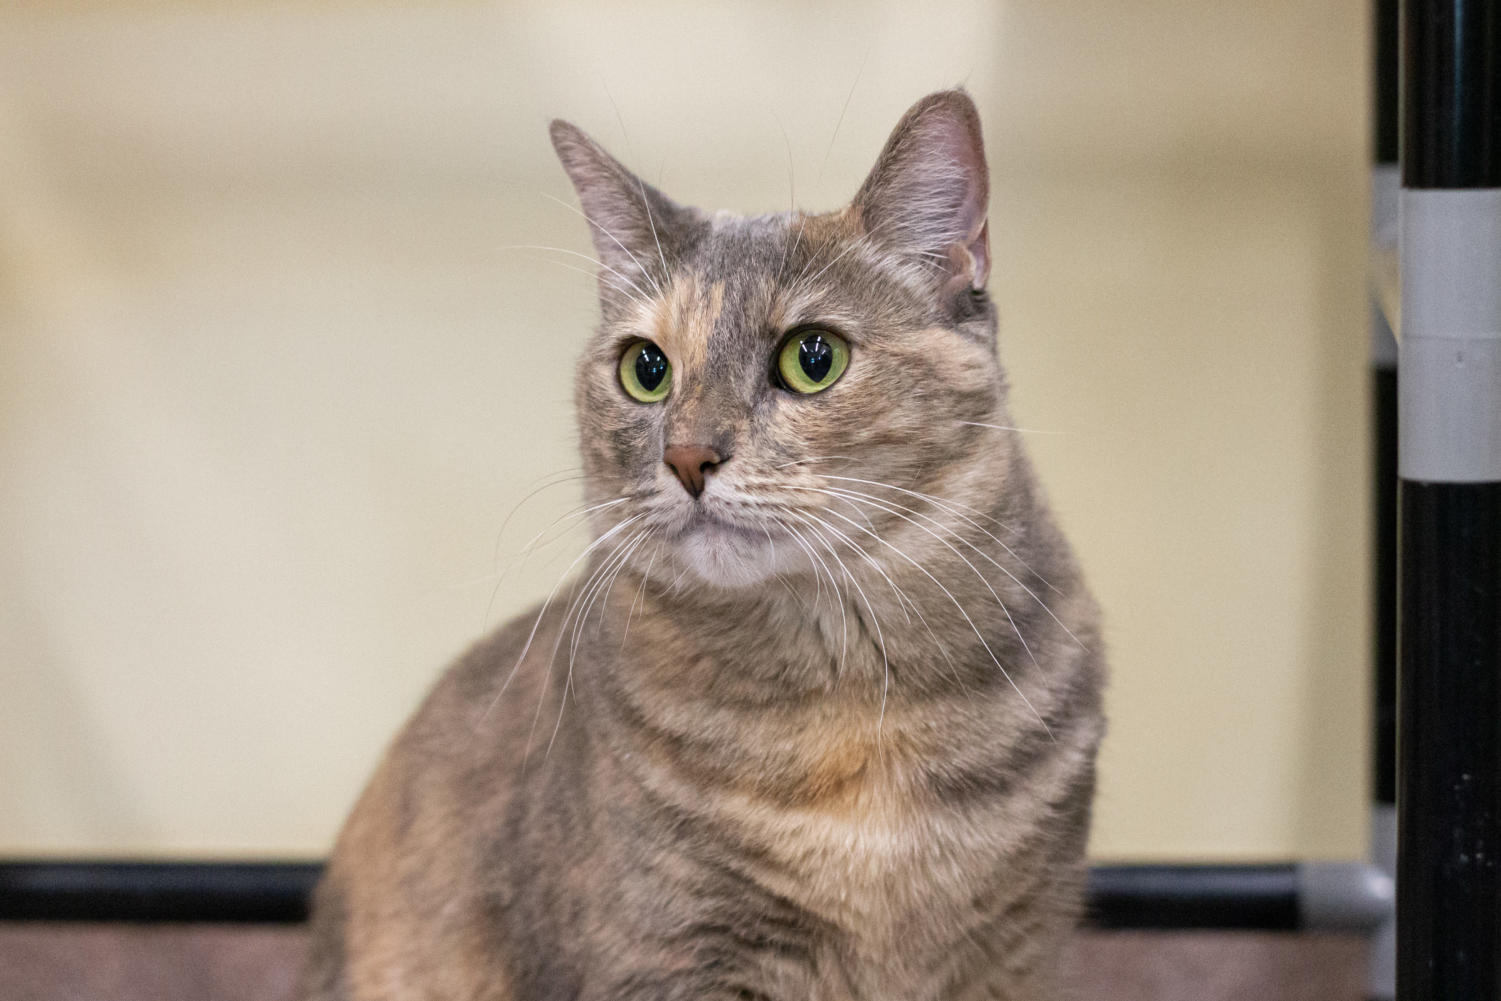 Fifi is very affectionate towards people and likes to explore.